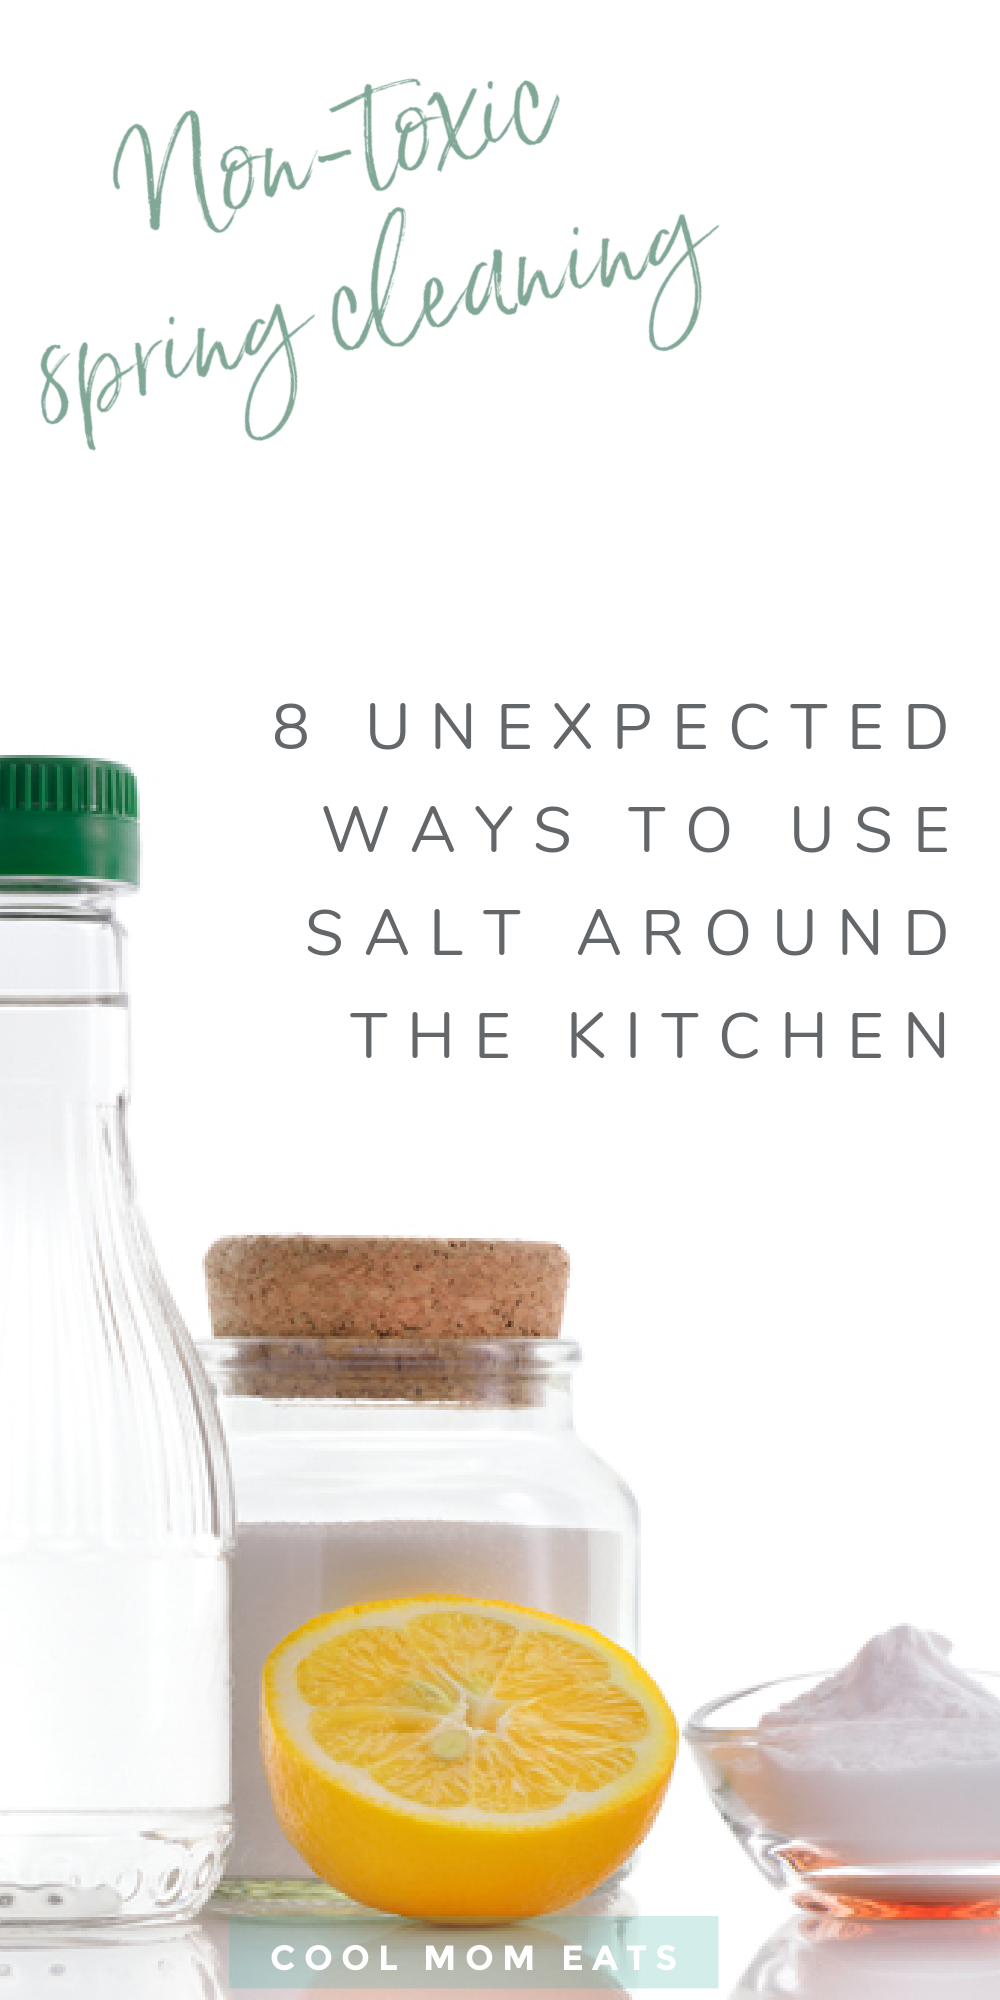 non-toxic cleaning tips: 8 unexpected ways to clean with salt around the kitchen